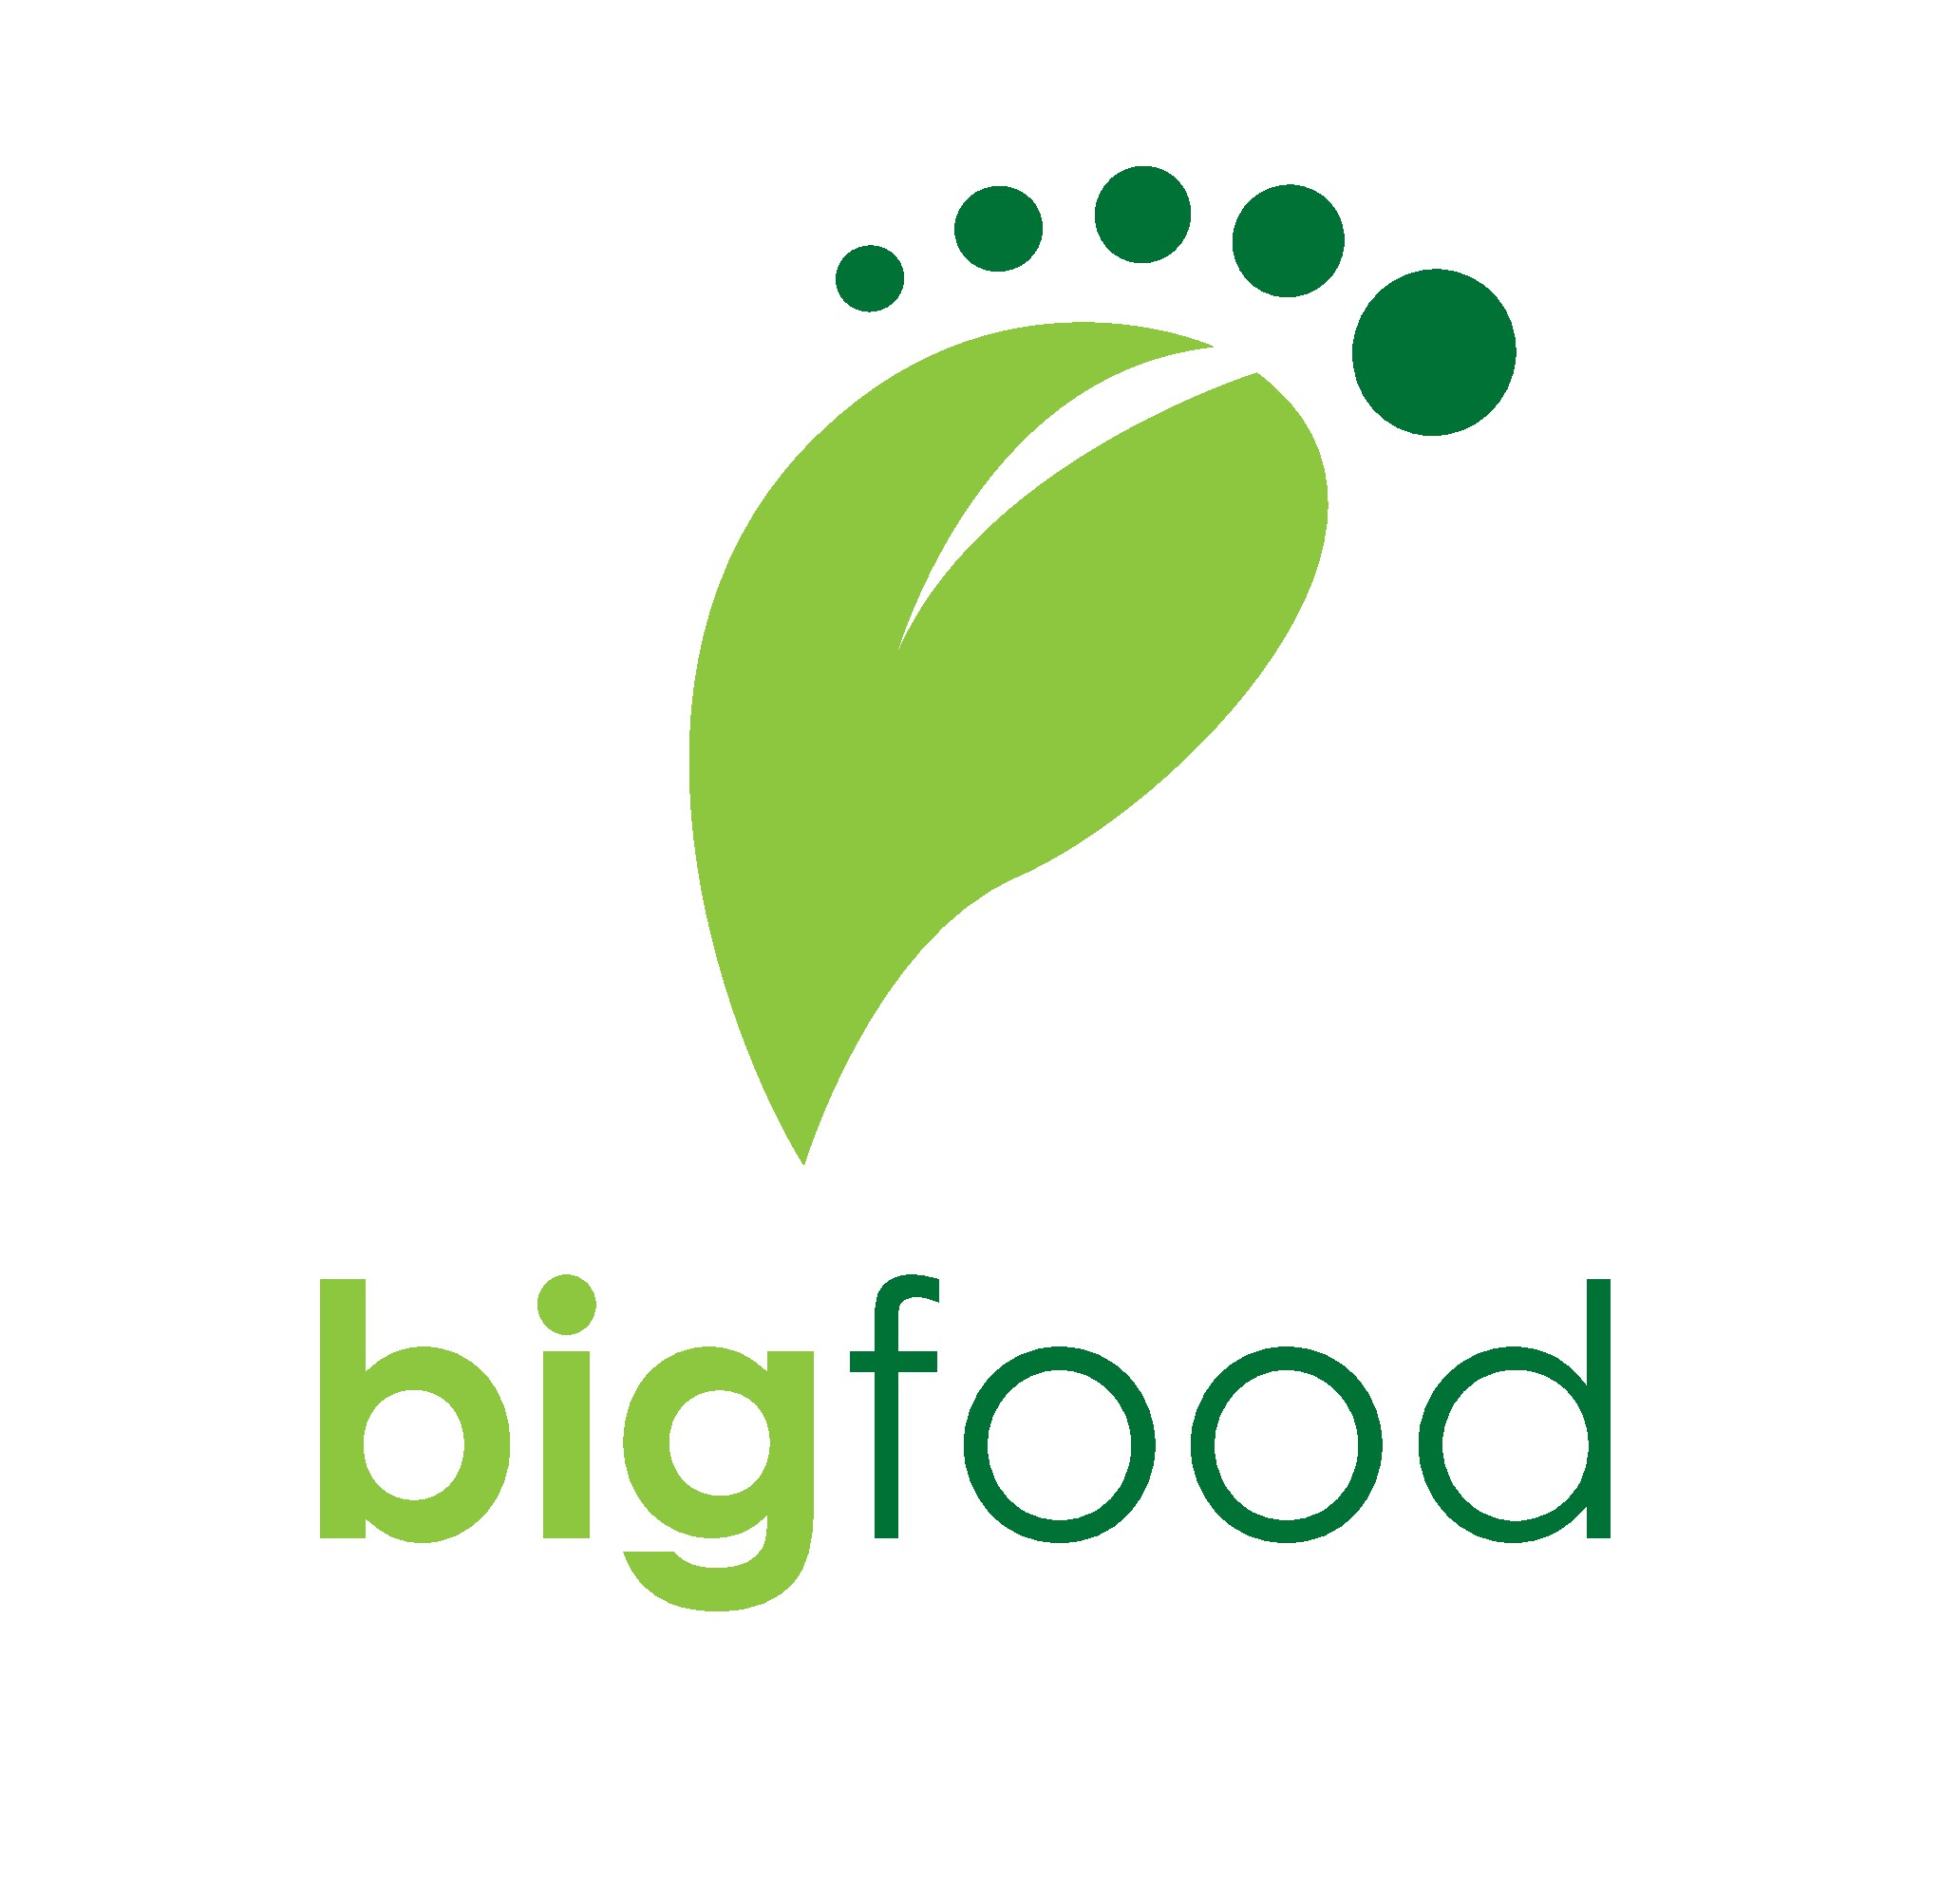 Our BIGFOOD initiative needs a great logo! Simple. Modern.